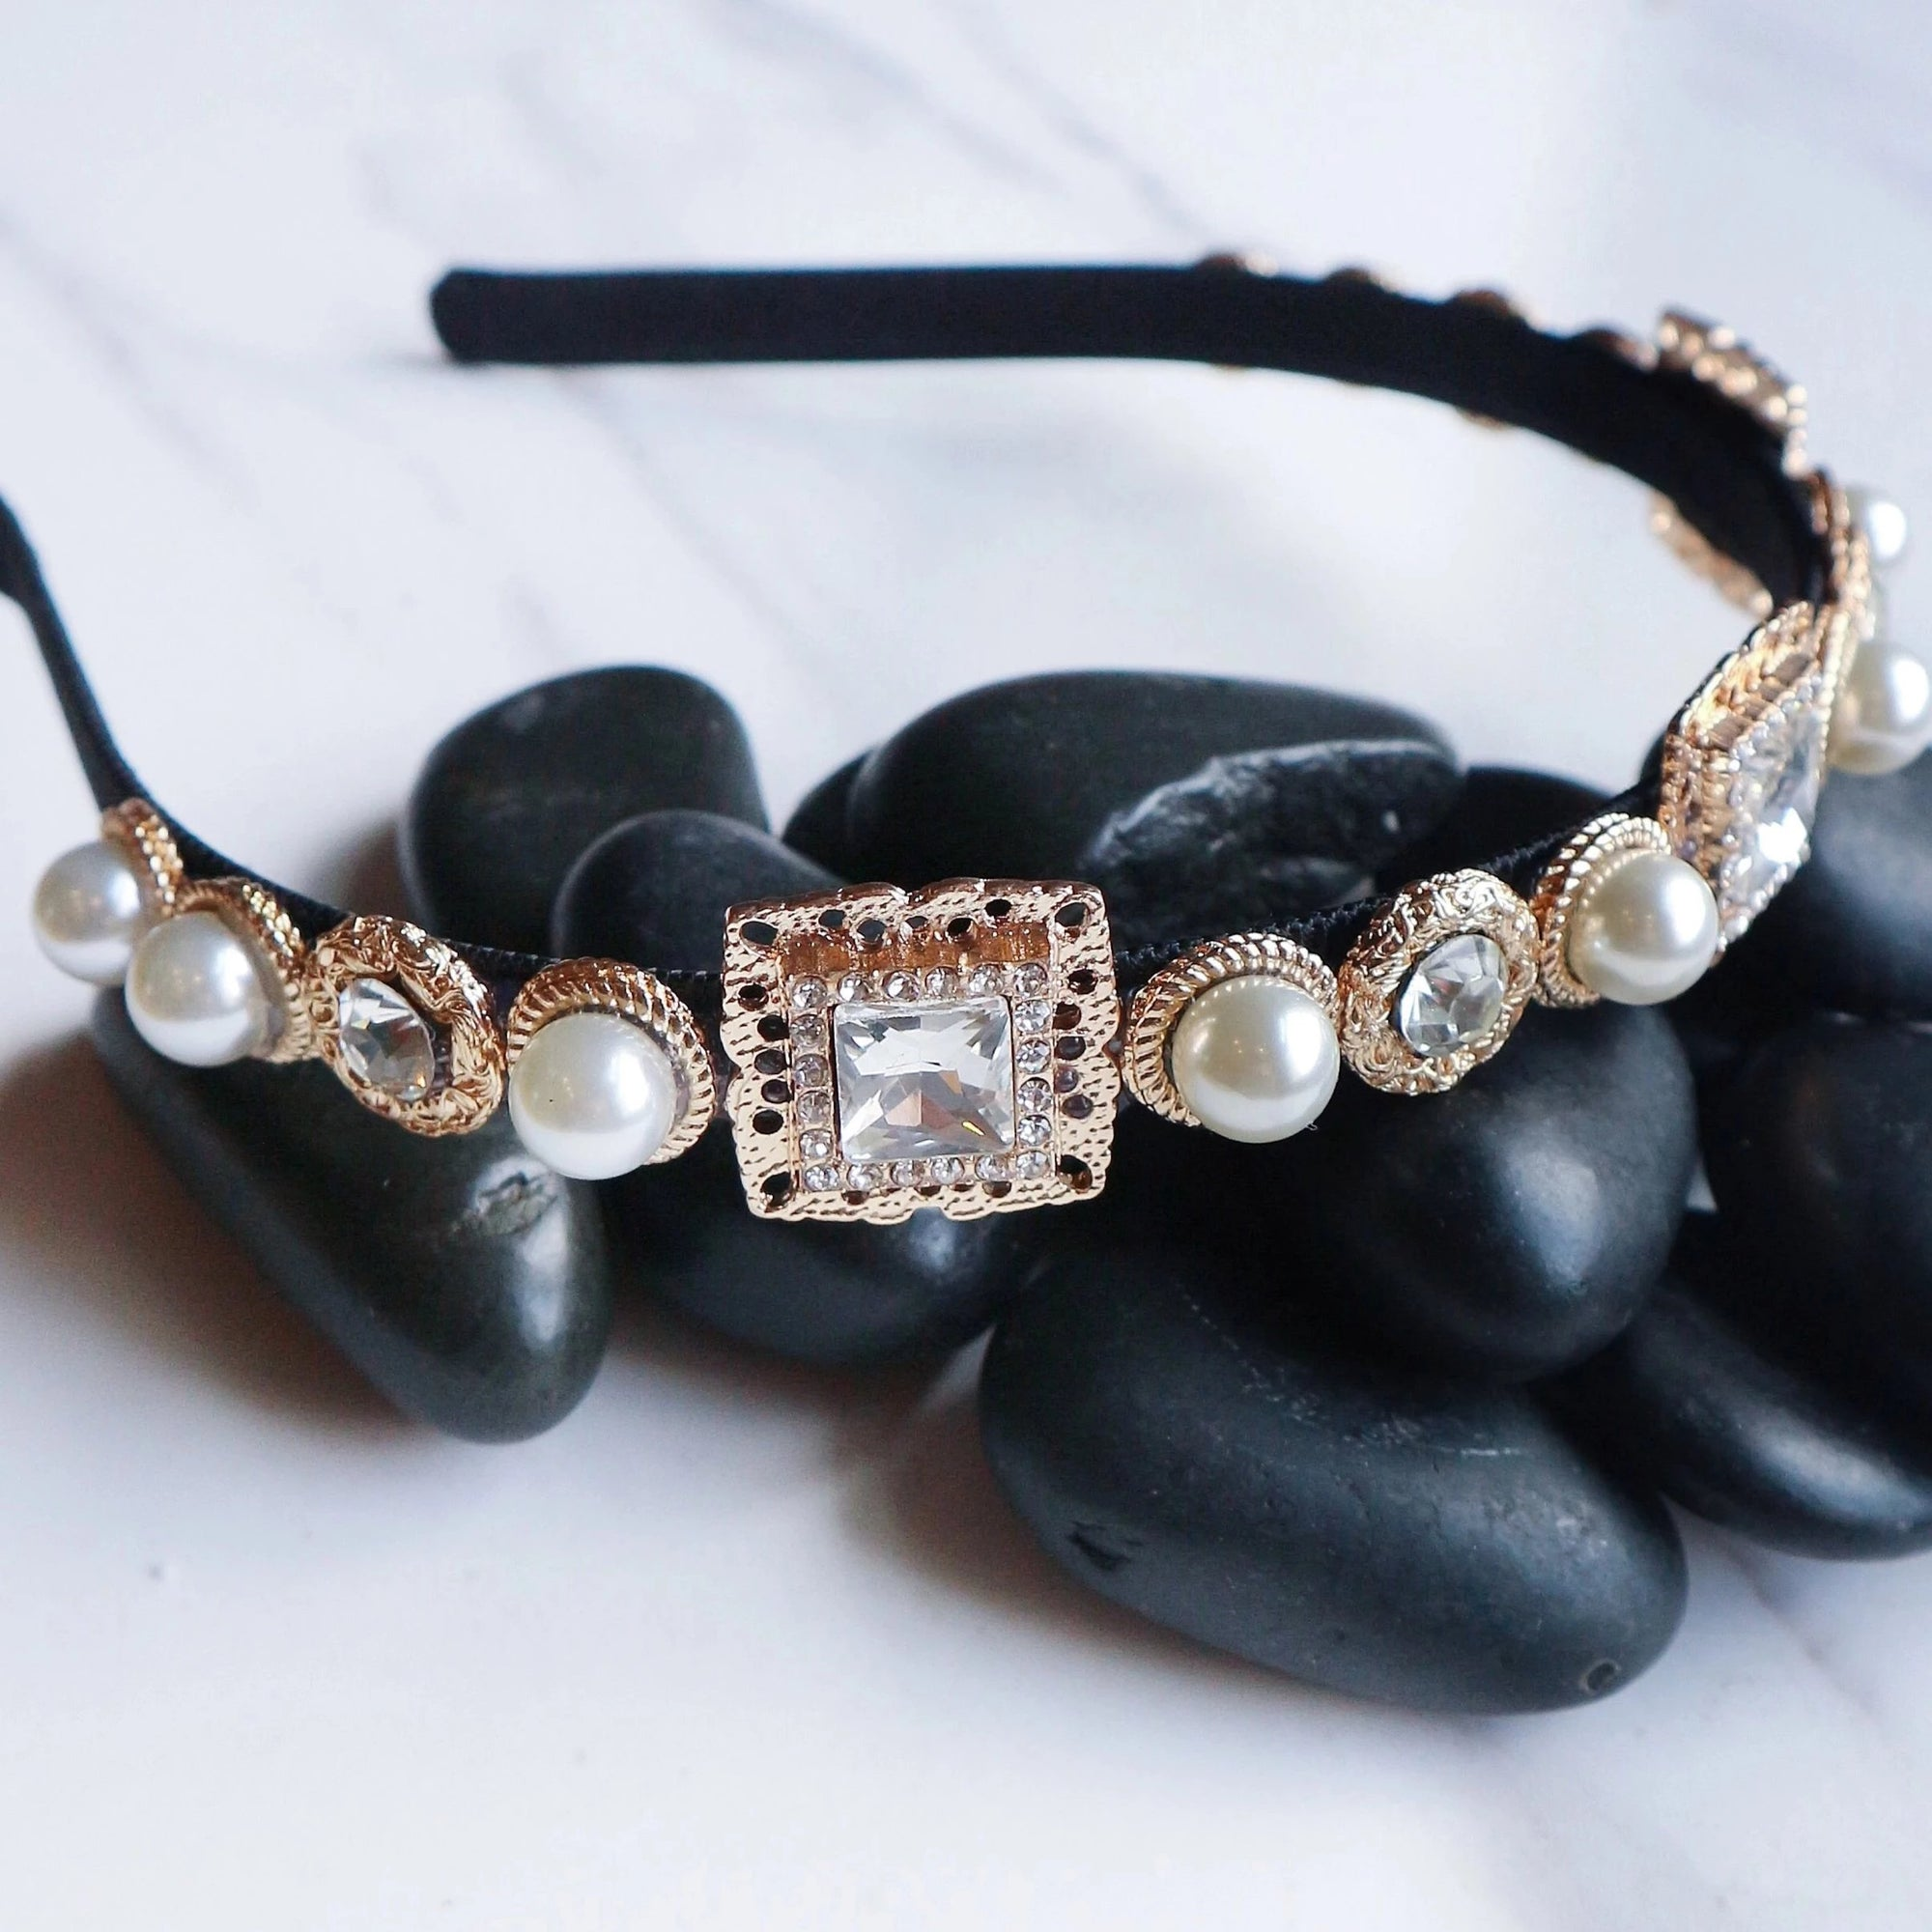 Amber - Clear Diamond - Statement jewellery by Radiant Riviera